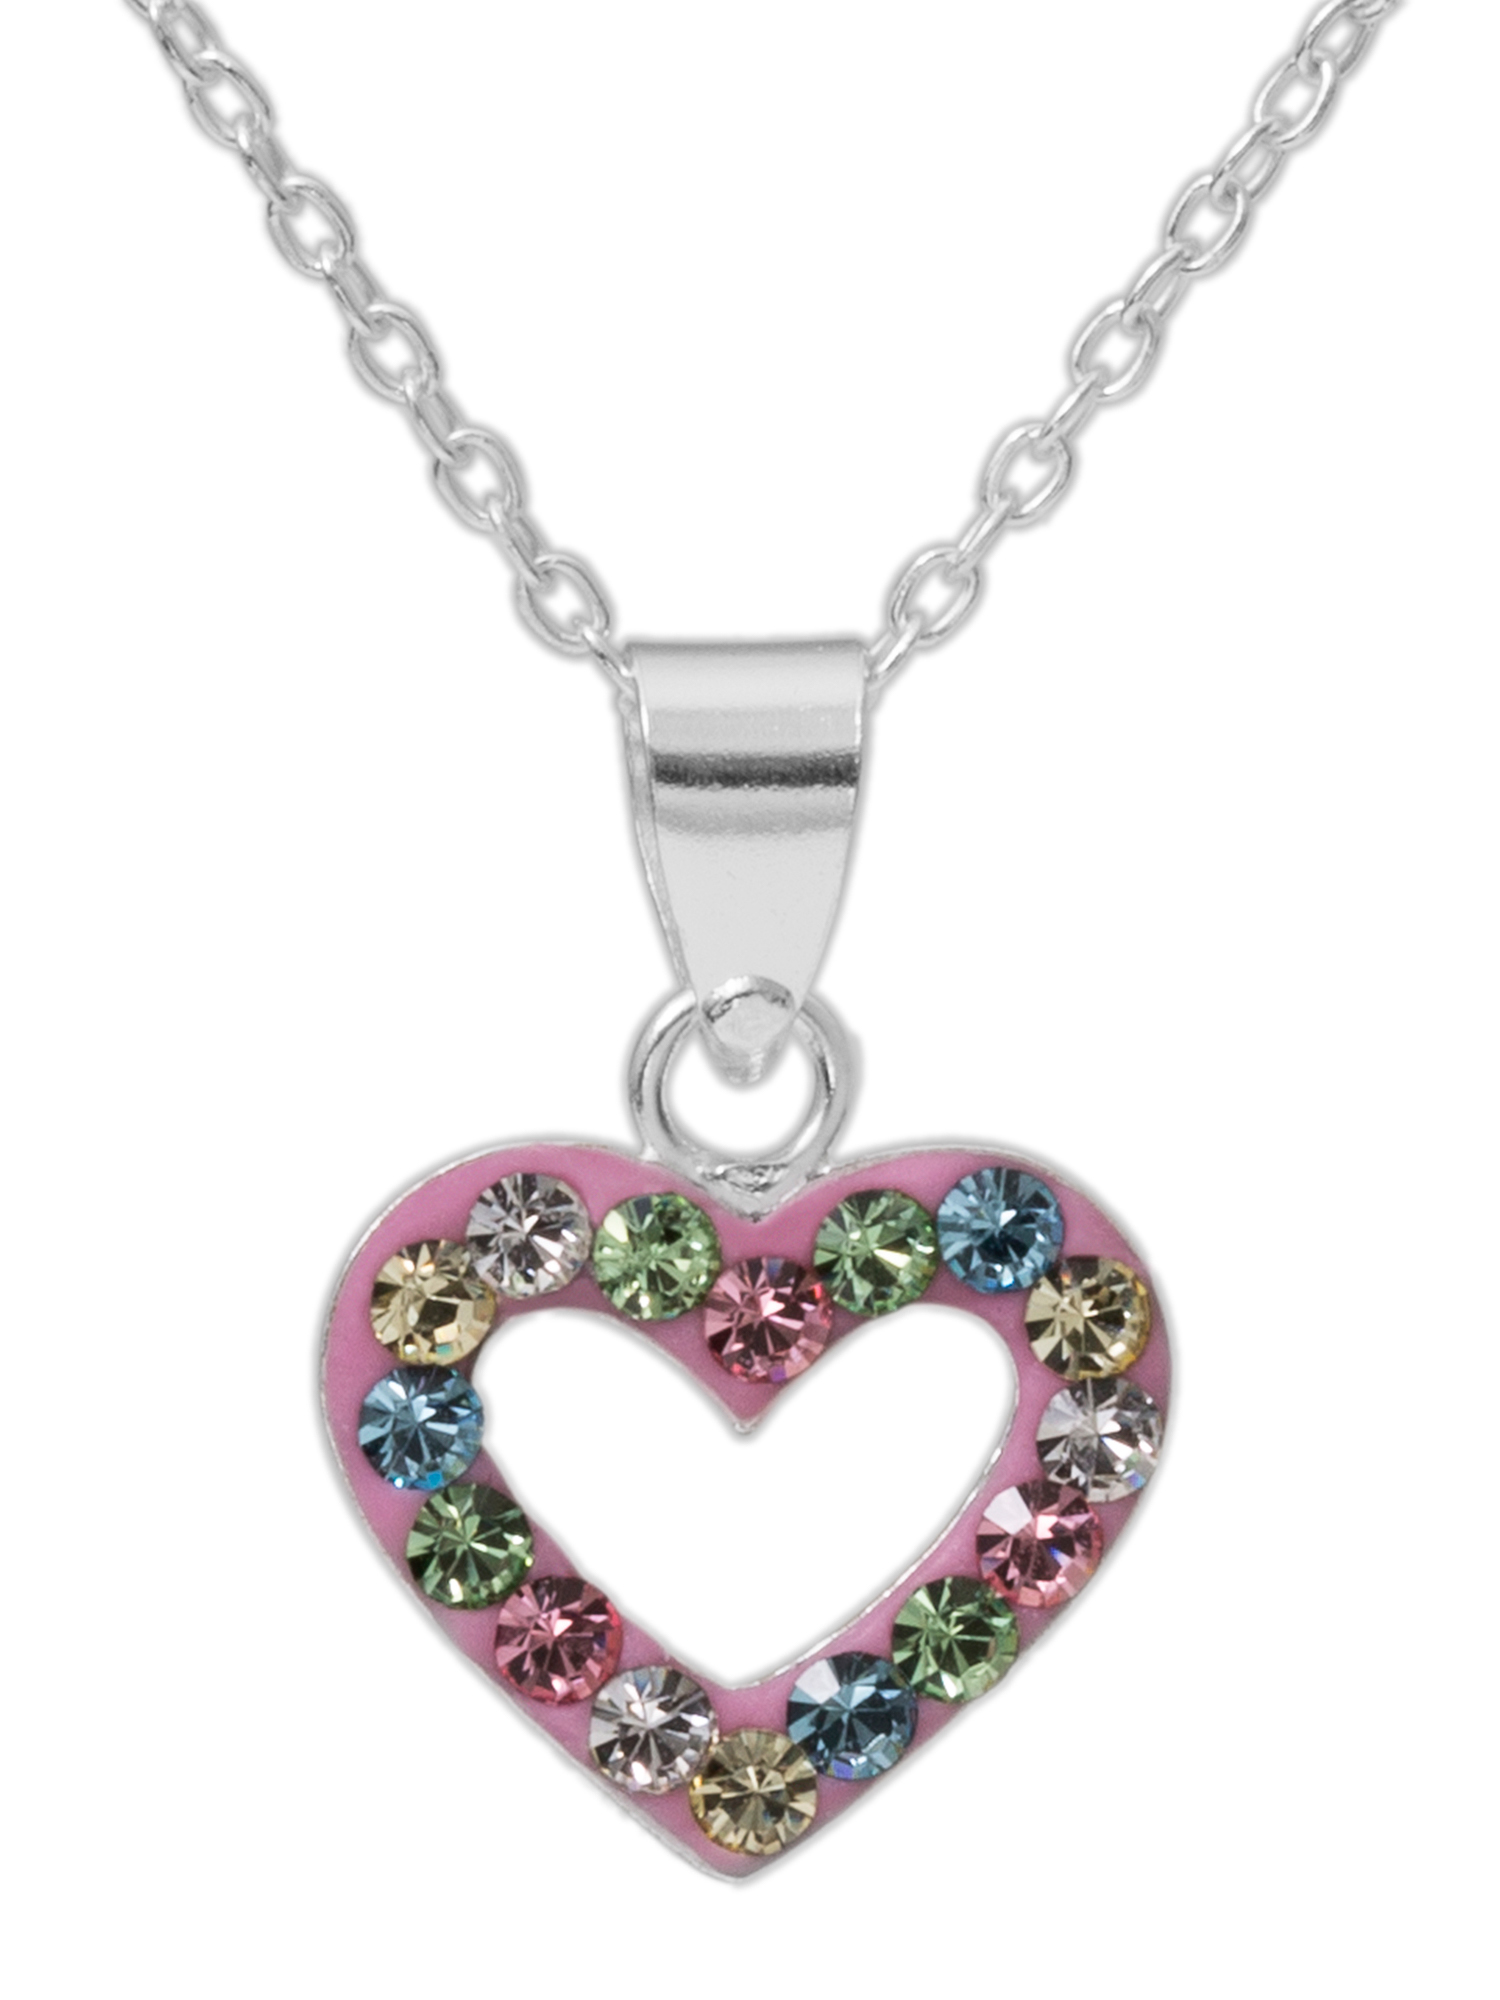 Girls' Multi-Crystal Accent Sterling Silver Heart Pendant, 18""